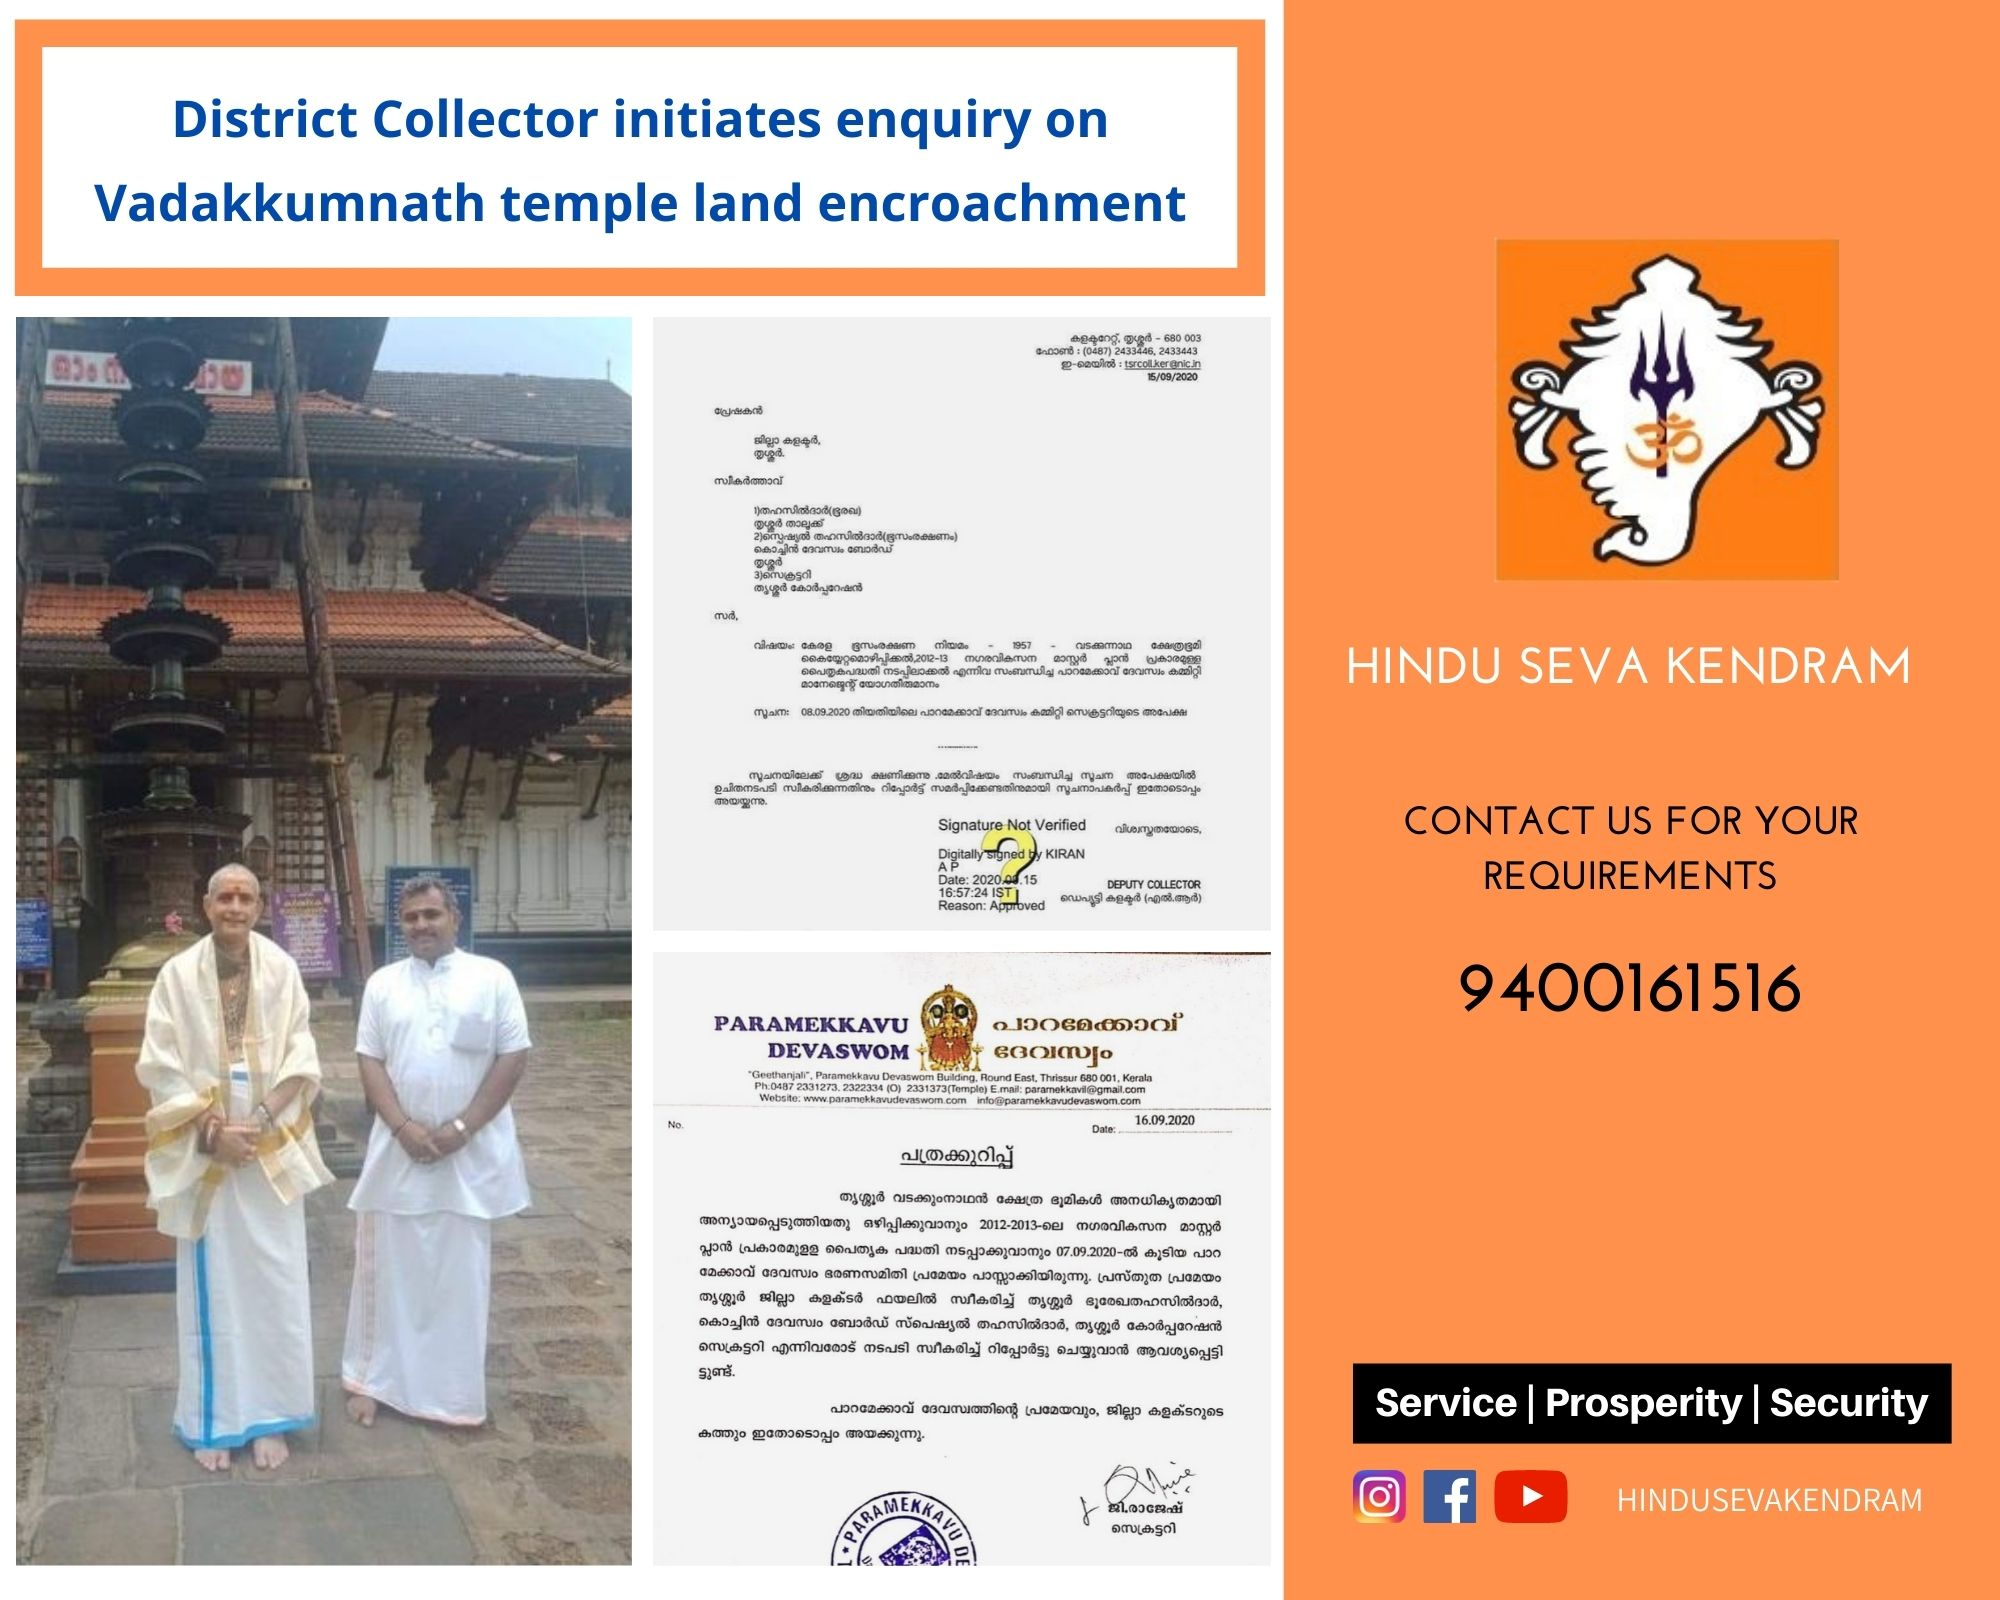 District Collector initiates enquiry on Vadakkumnath temple land encroachment